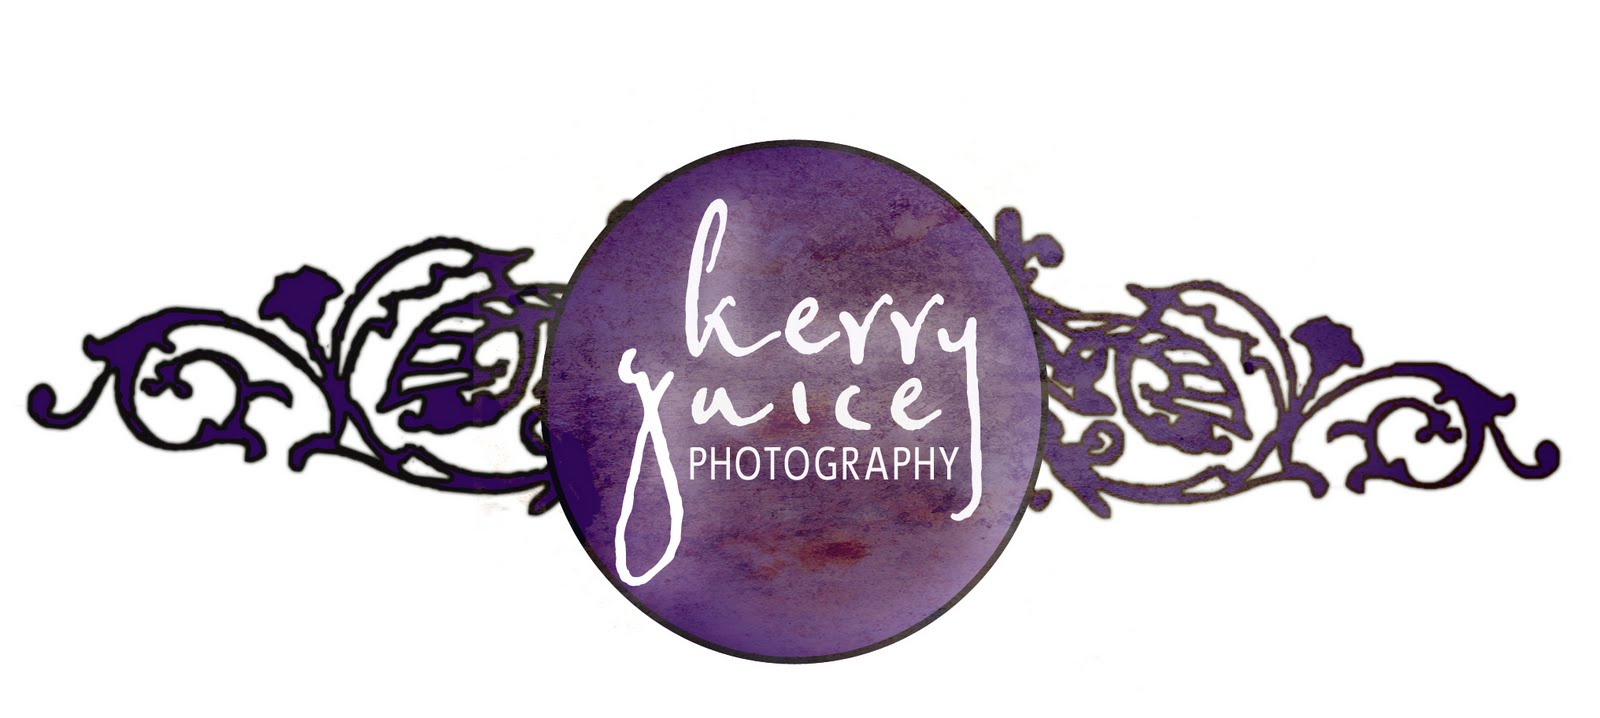 KERRY GUICE PHOTOGRAPHY